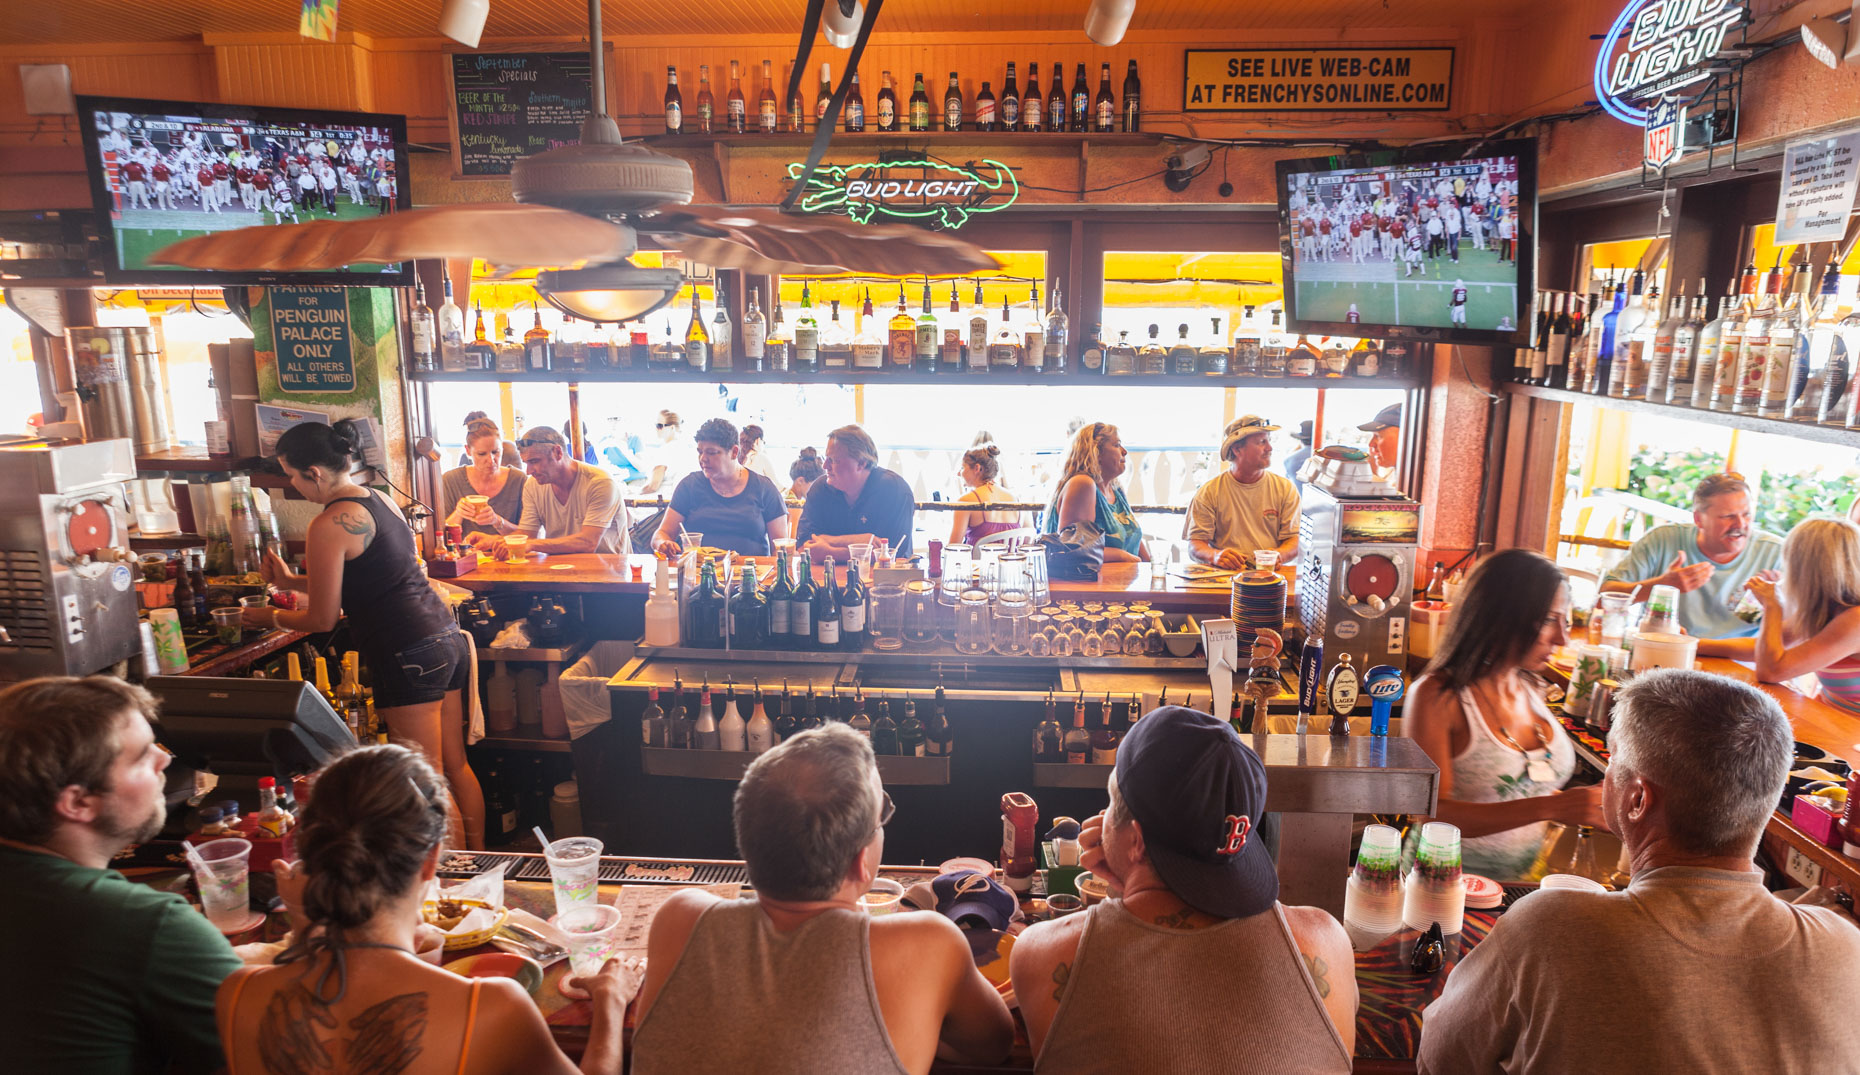 beach bar, shot by Steven P. Widoff, editorial, lifestyle and advertising commercial photographer in Tampa, Florida.